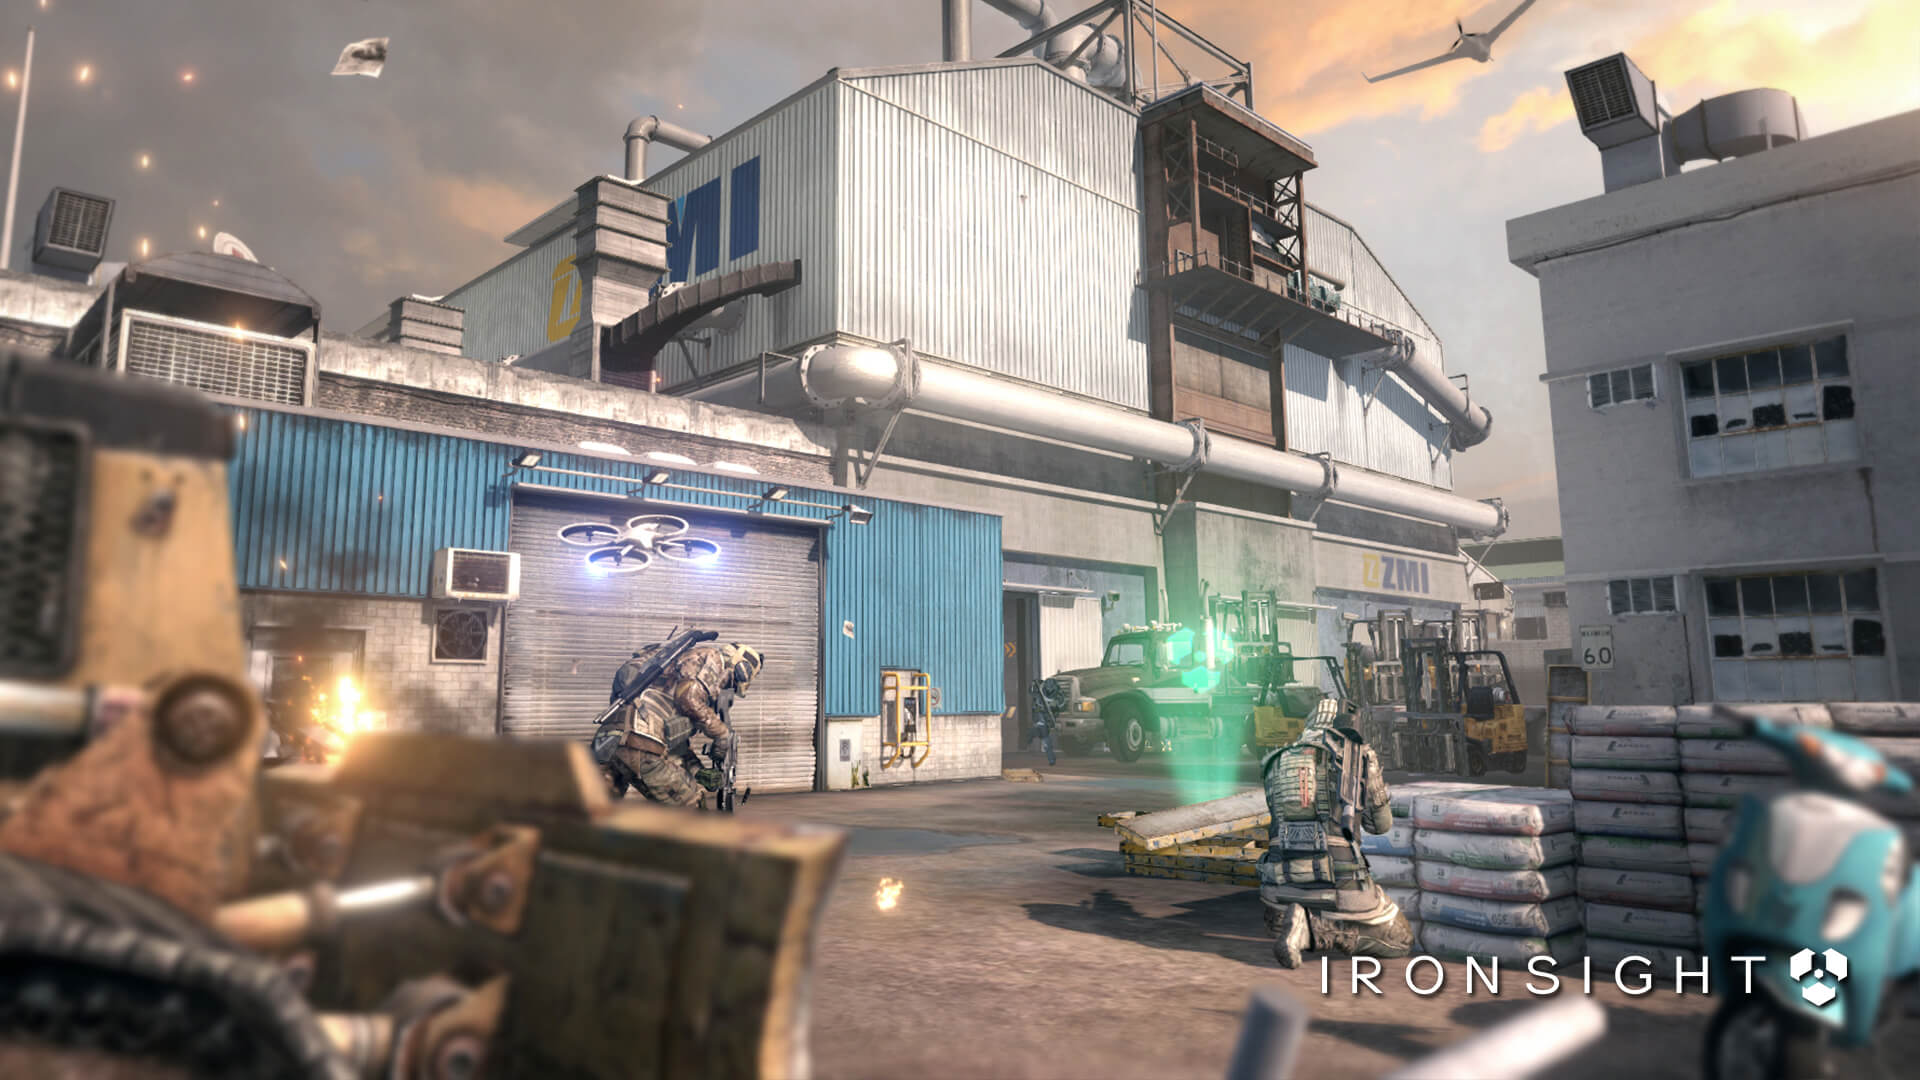 Exclusive Ironsight features - Drones - Ironsight